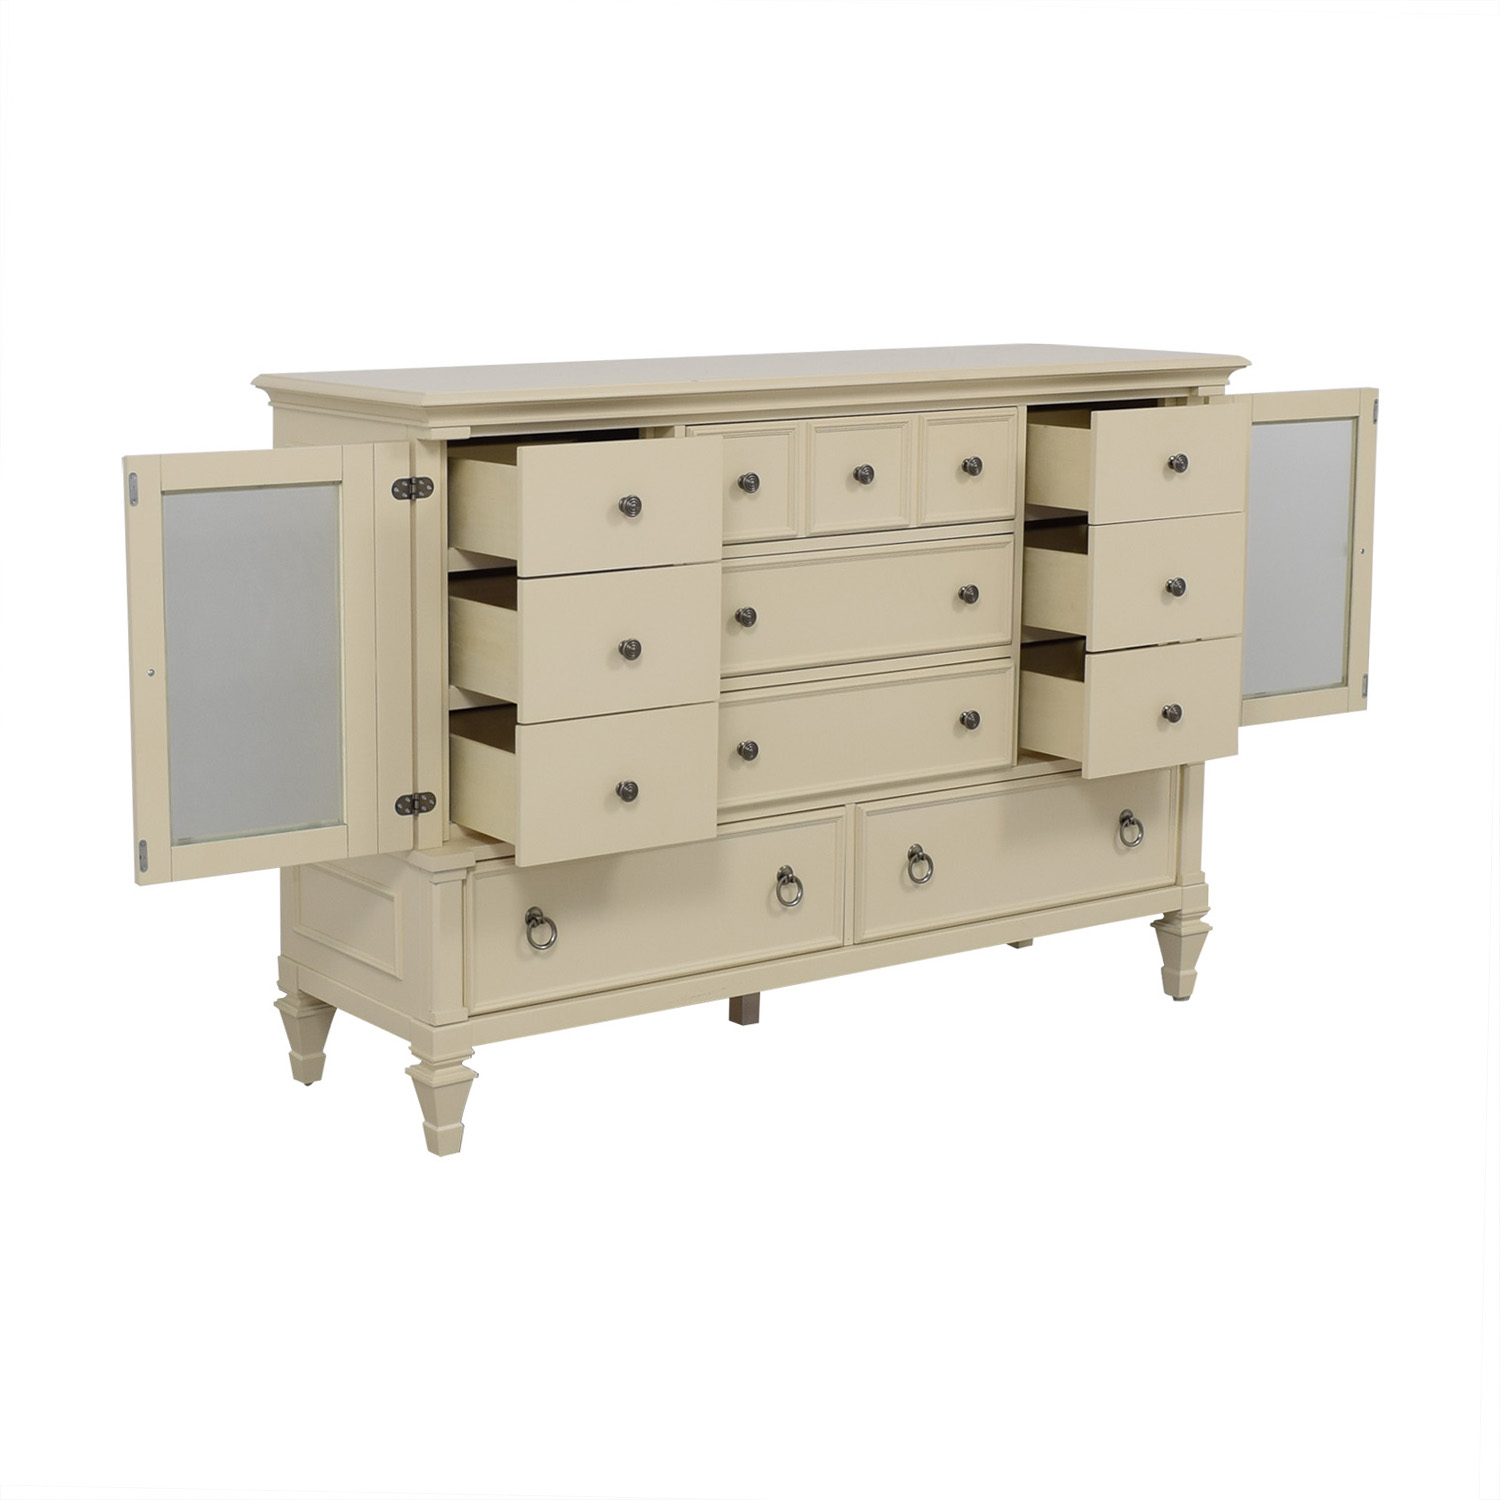 Raymour & Flanigan Raymour & Flanigan Somerset Bedroom Dresser used